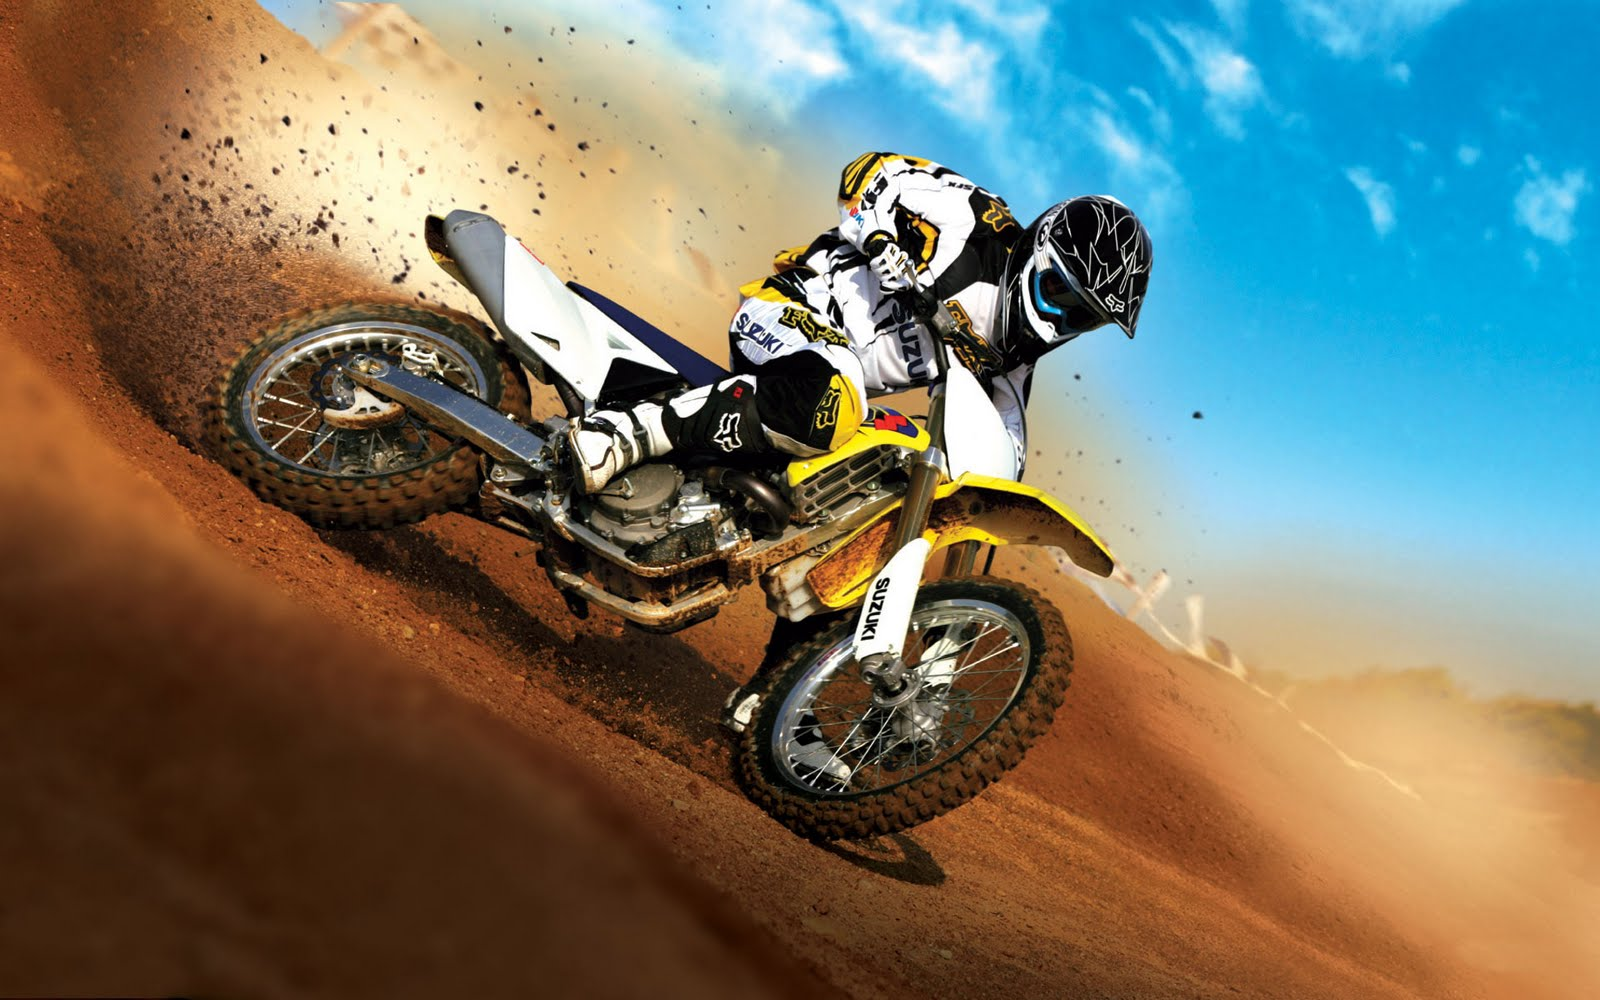 http://2.bp.blogspot.com/-rDh75ODRx3g/TlyrbnSQgVI/AAAAAAAAAEY/6KfXunwBk3o/s1600/bike-stunts-hd-wallpapers-widescreen.jpg